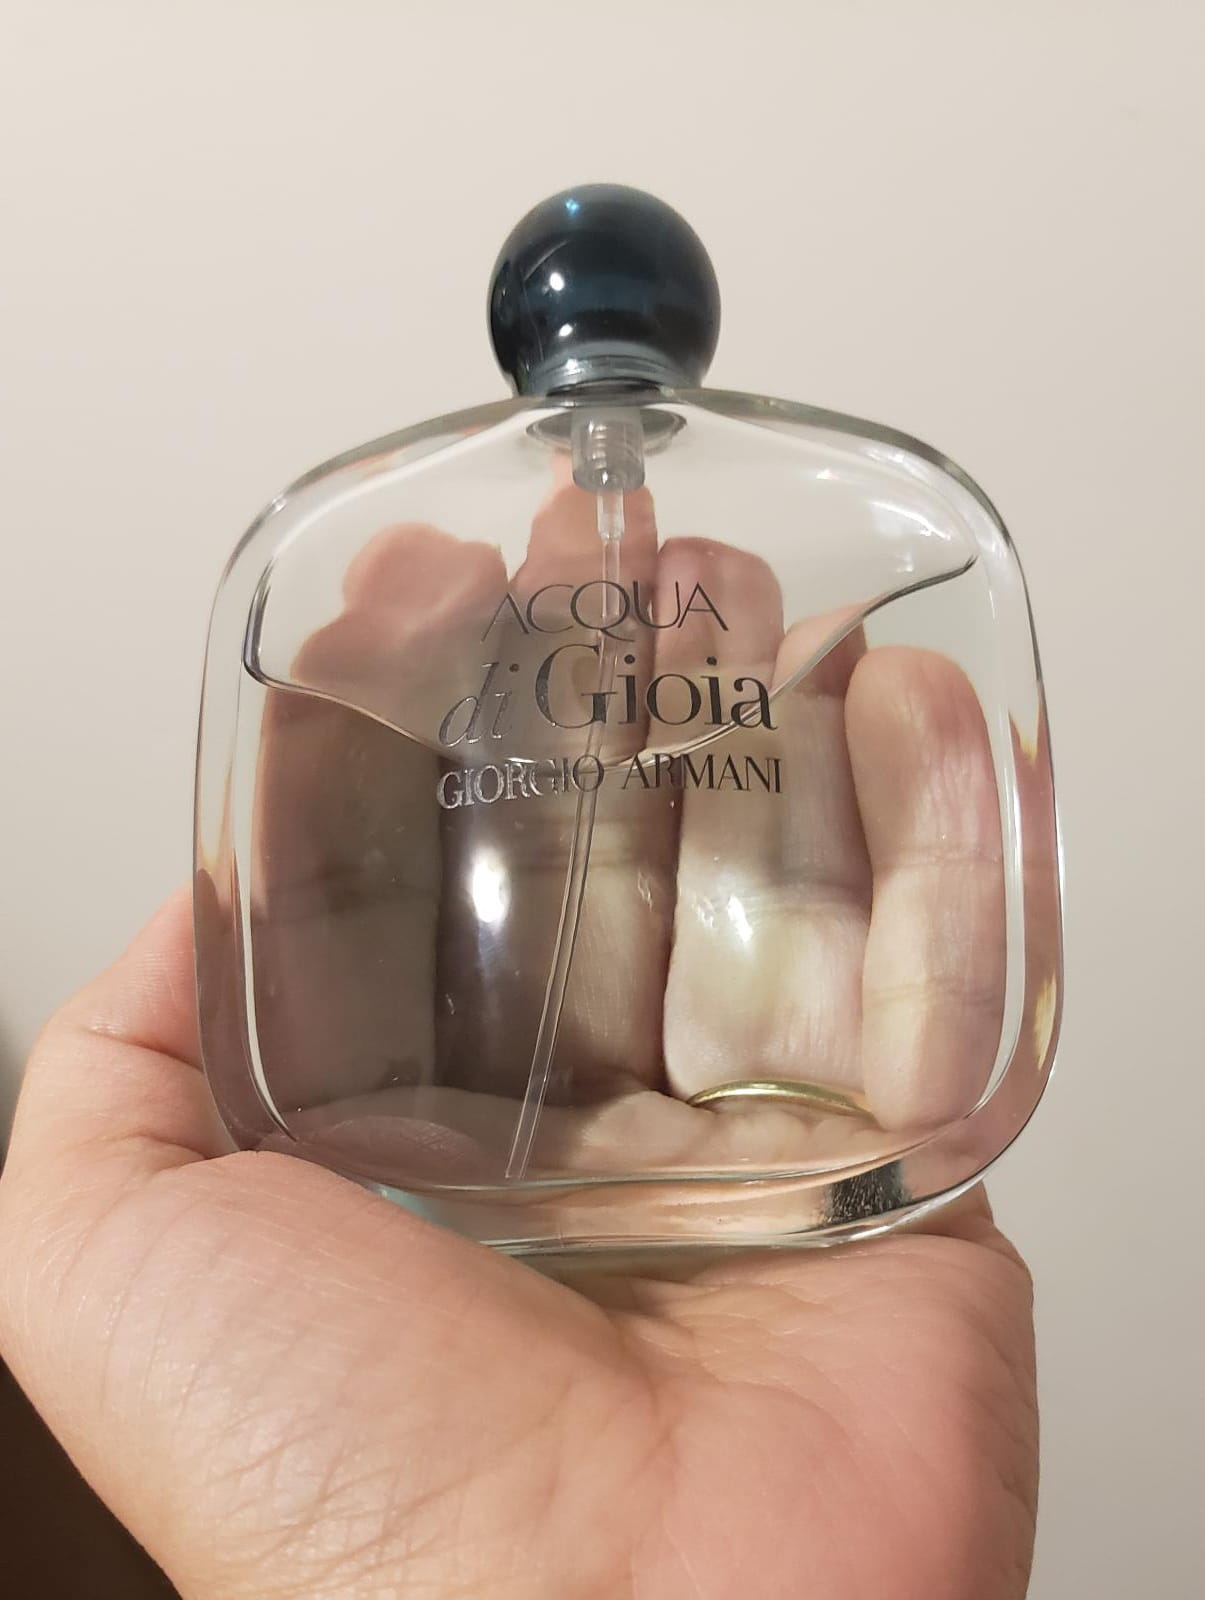 Giorgio Armani Acqua Di Gioia Eau De Parfum-Perfect for Day wear!-By poonam_kakkar-1